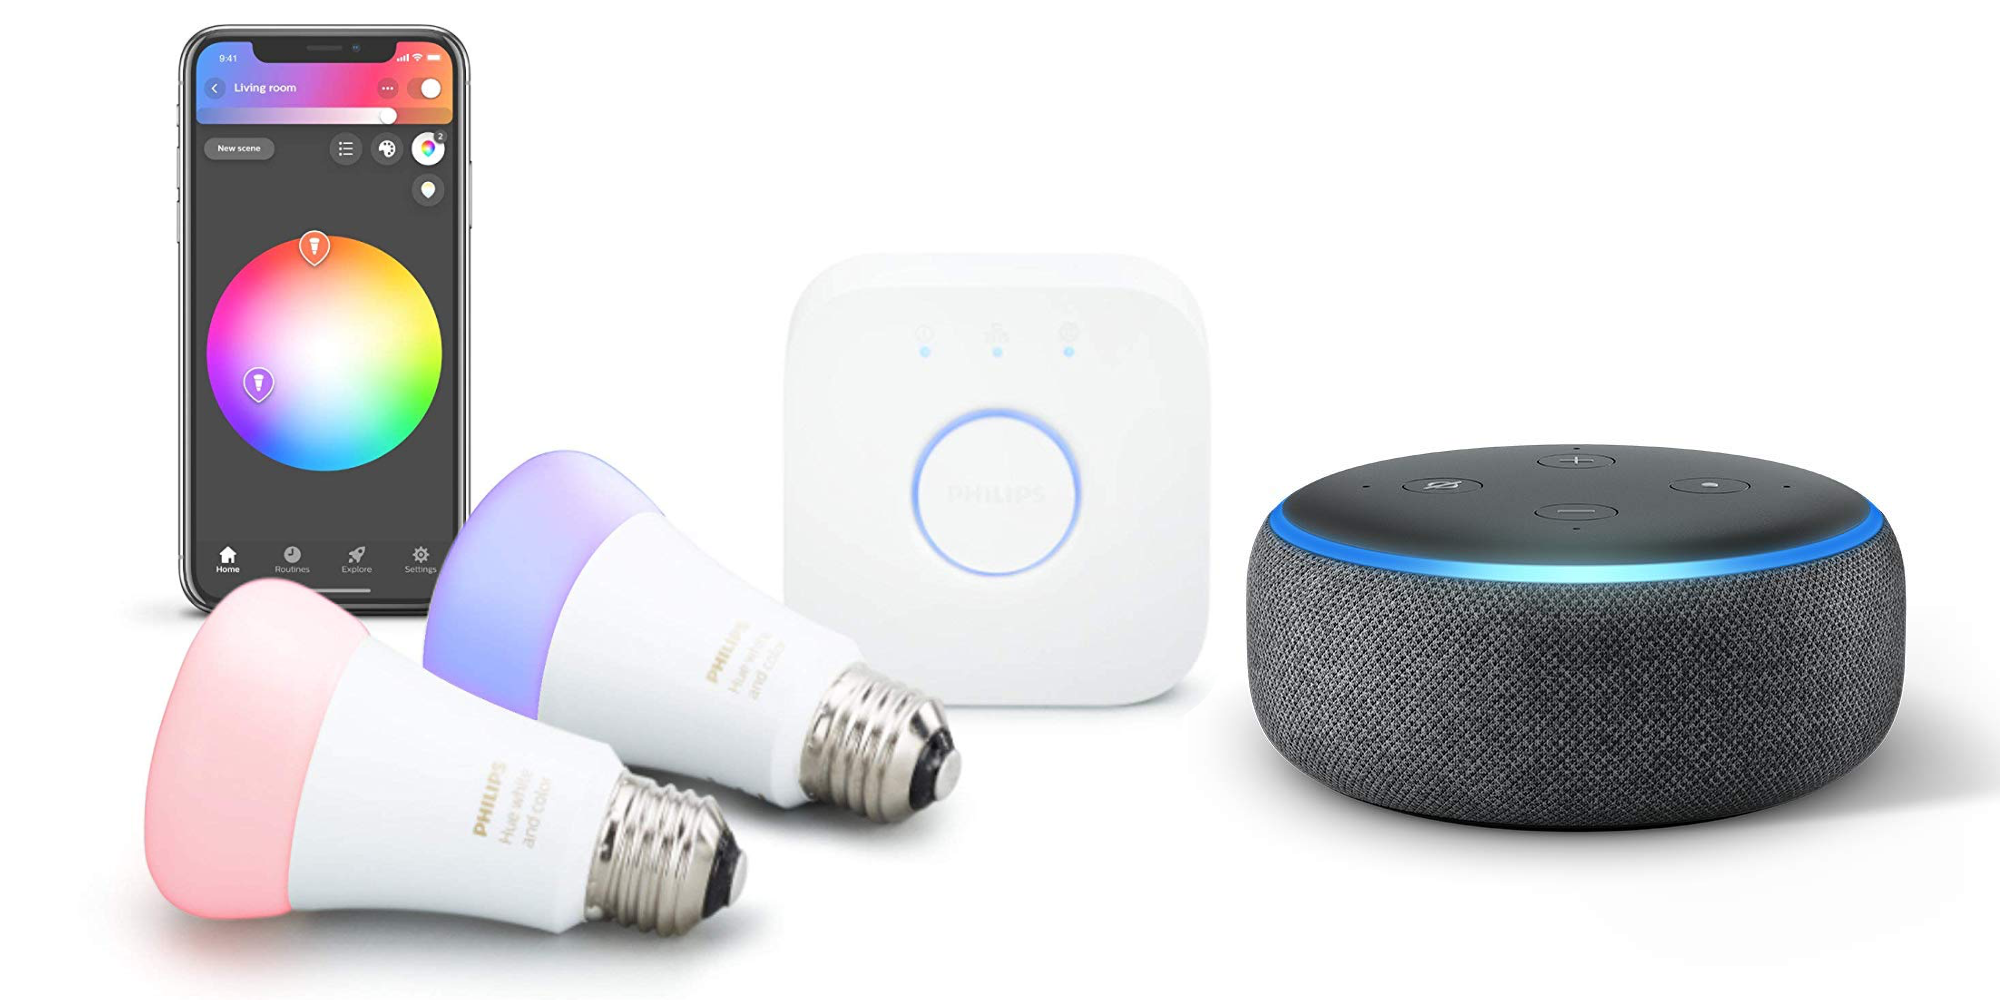 9to5Toys Last Call: TP-Link Smart Home & Networking Sale